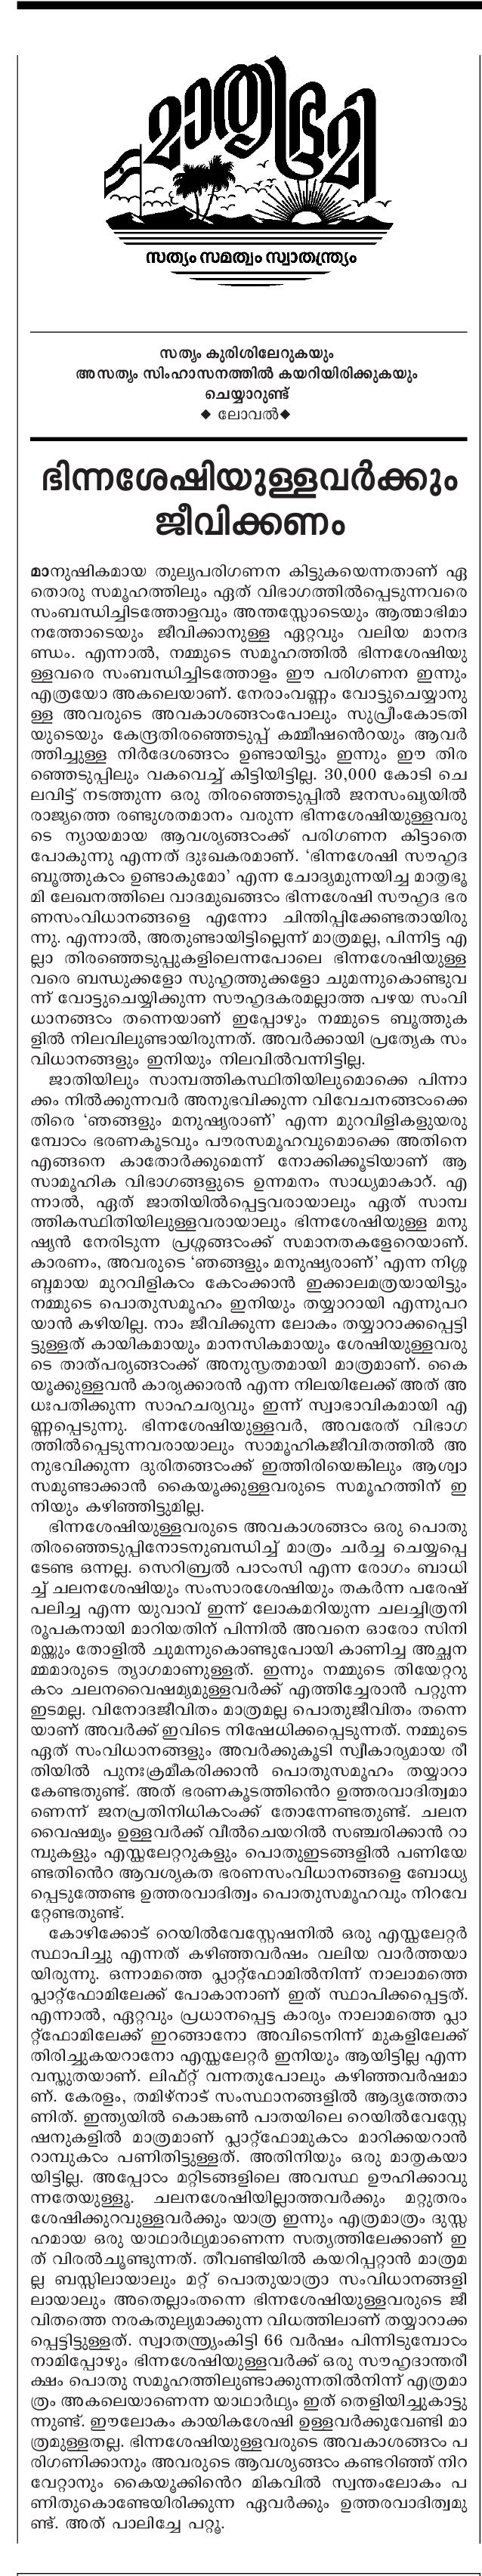 mathrubhumi editorial on 11-04-2014